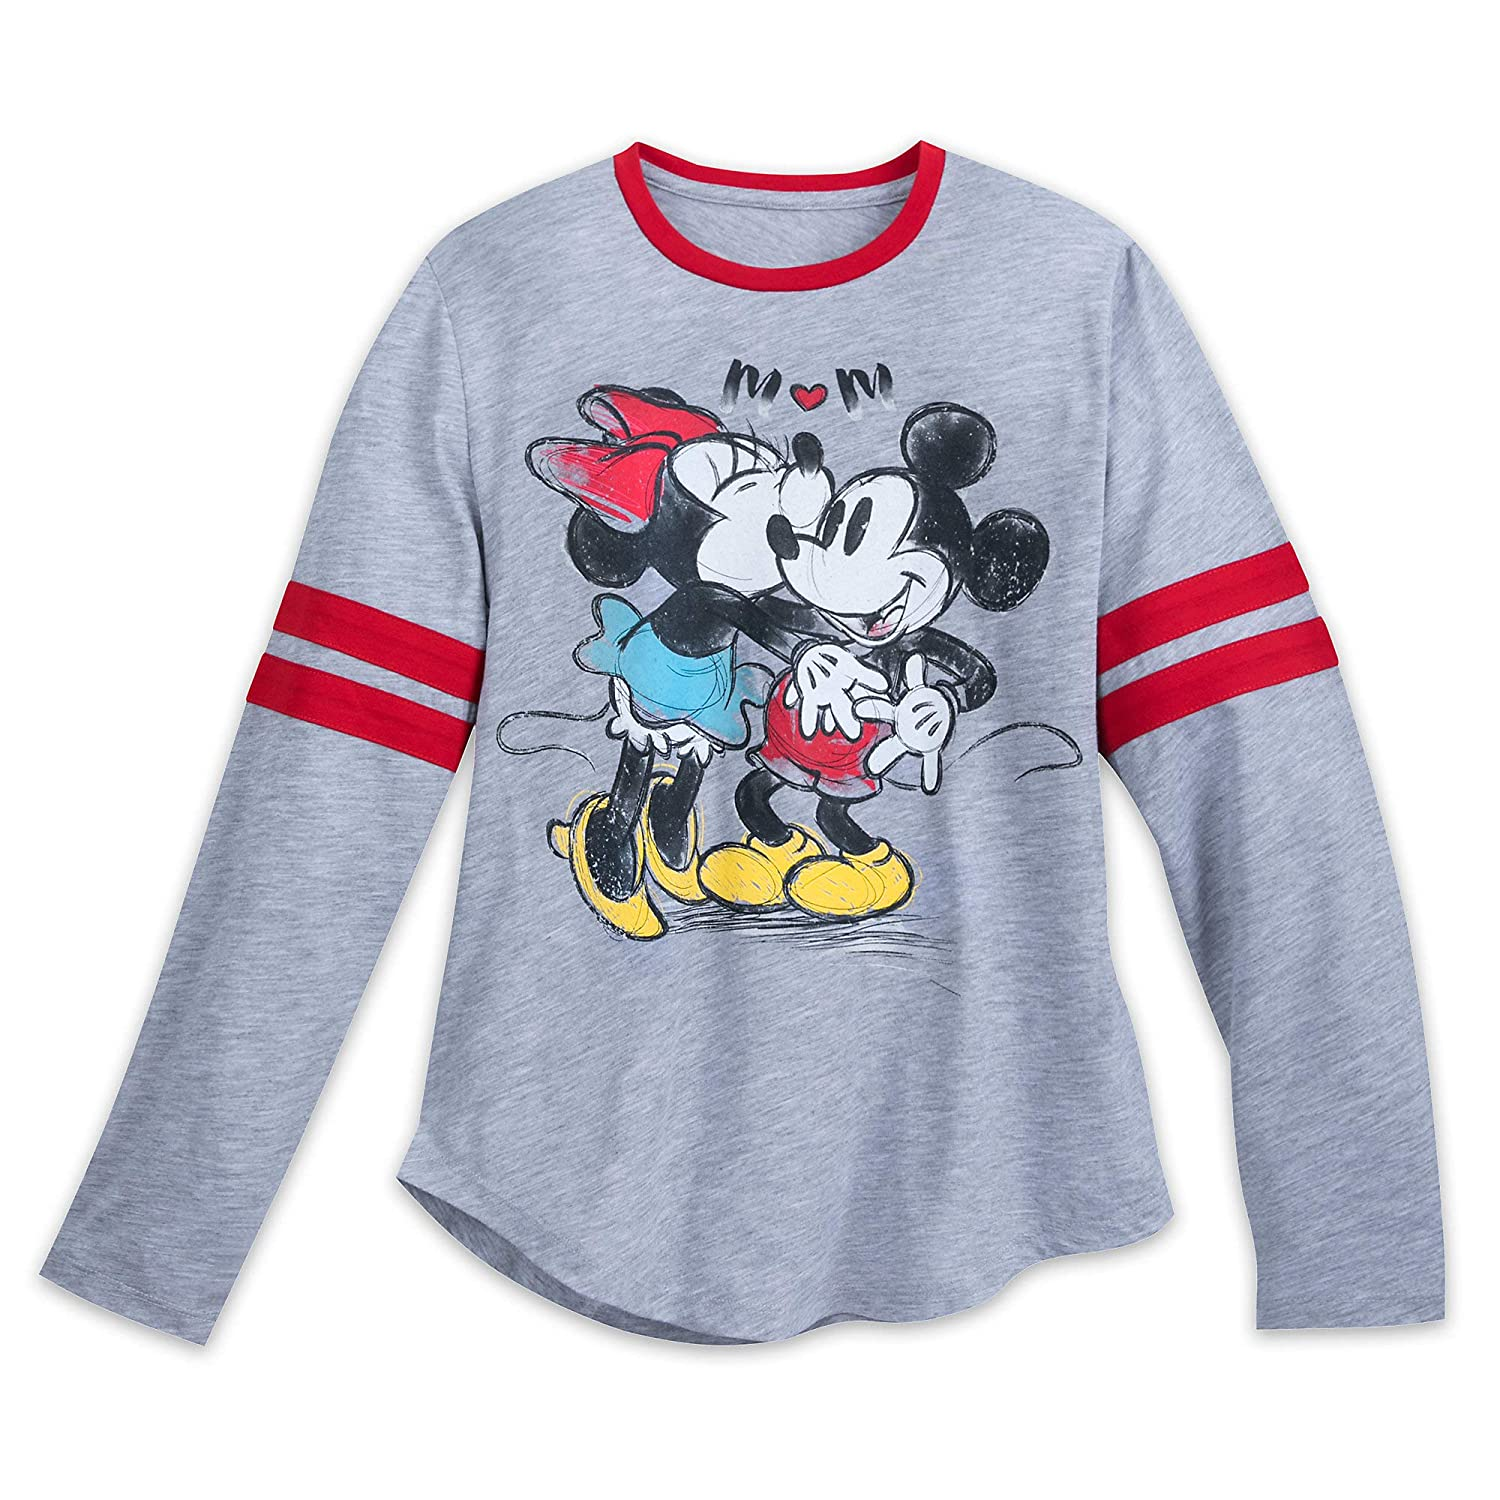 Disney Mickey Mouse Minnie Mouse Long Sleeve Shirt Adults Multi